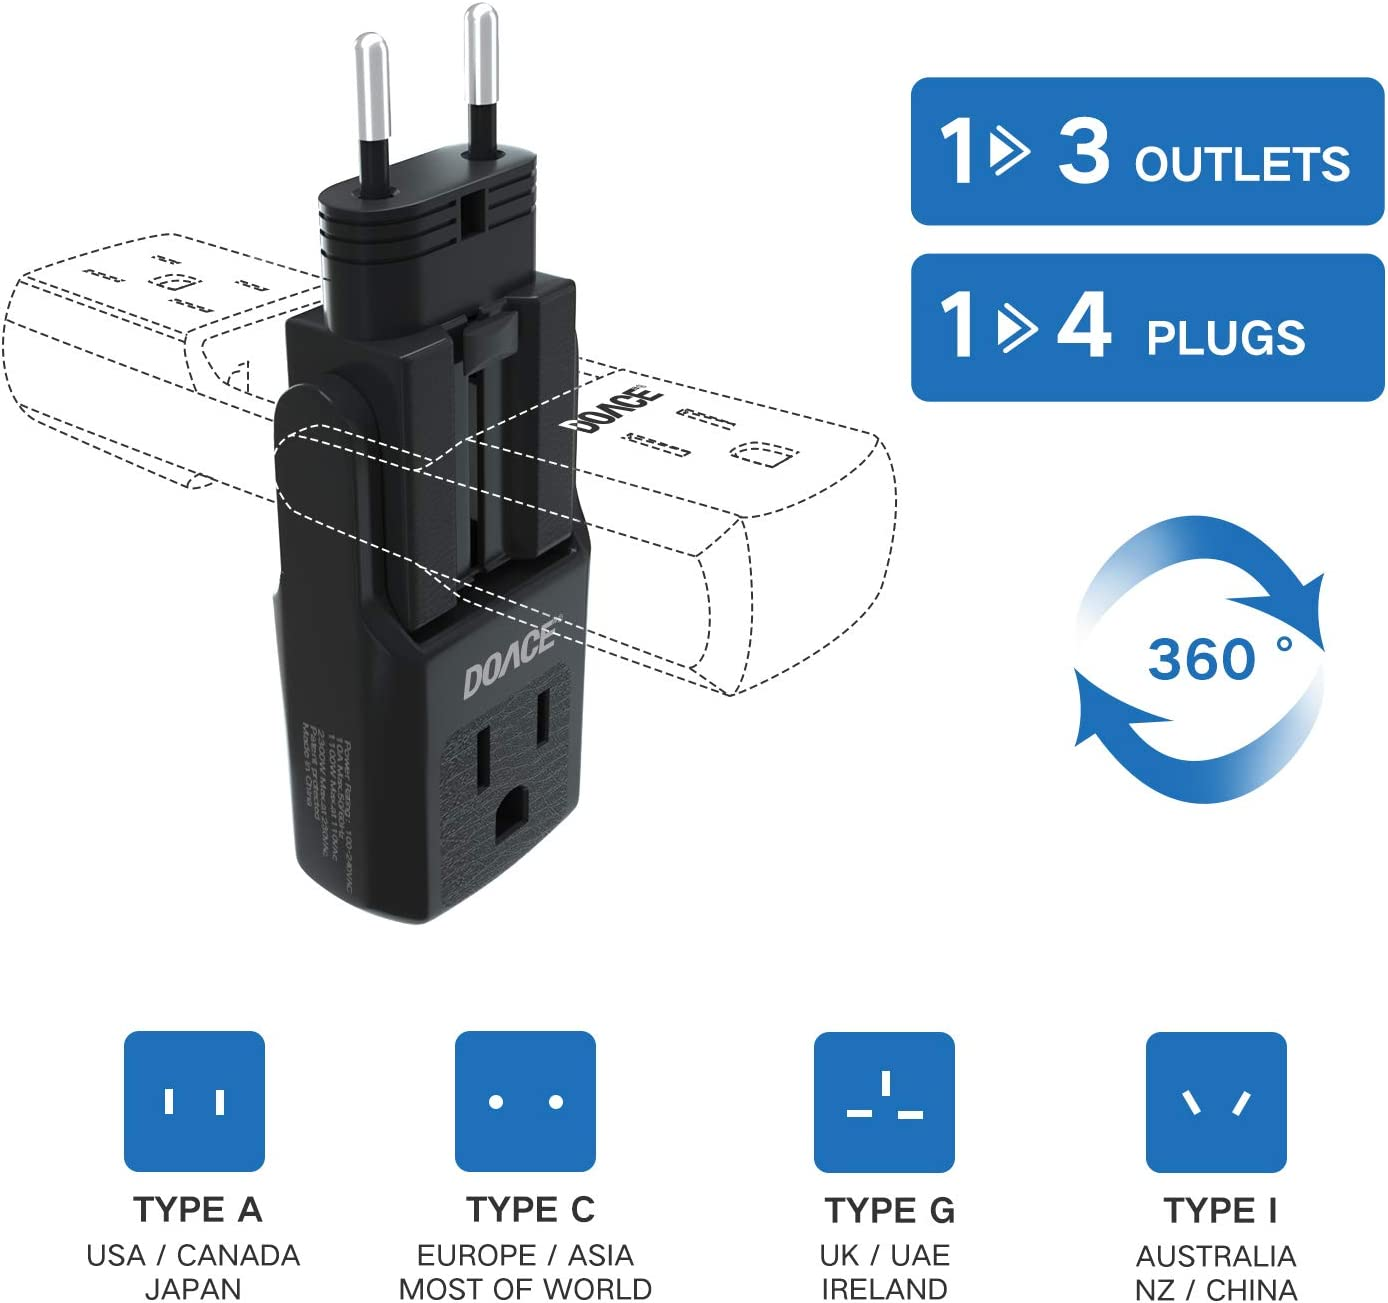 DOACE 2000W Travel Adapter with 3 AC Outlets for Cell Phone, Camera, Laptop MacBook, All in One International Power Adapter Plug Wall Charger, US to UK AU Europe Electrical Adapter Over 190 Countries